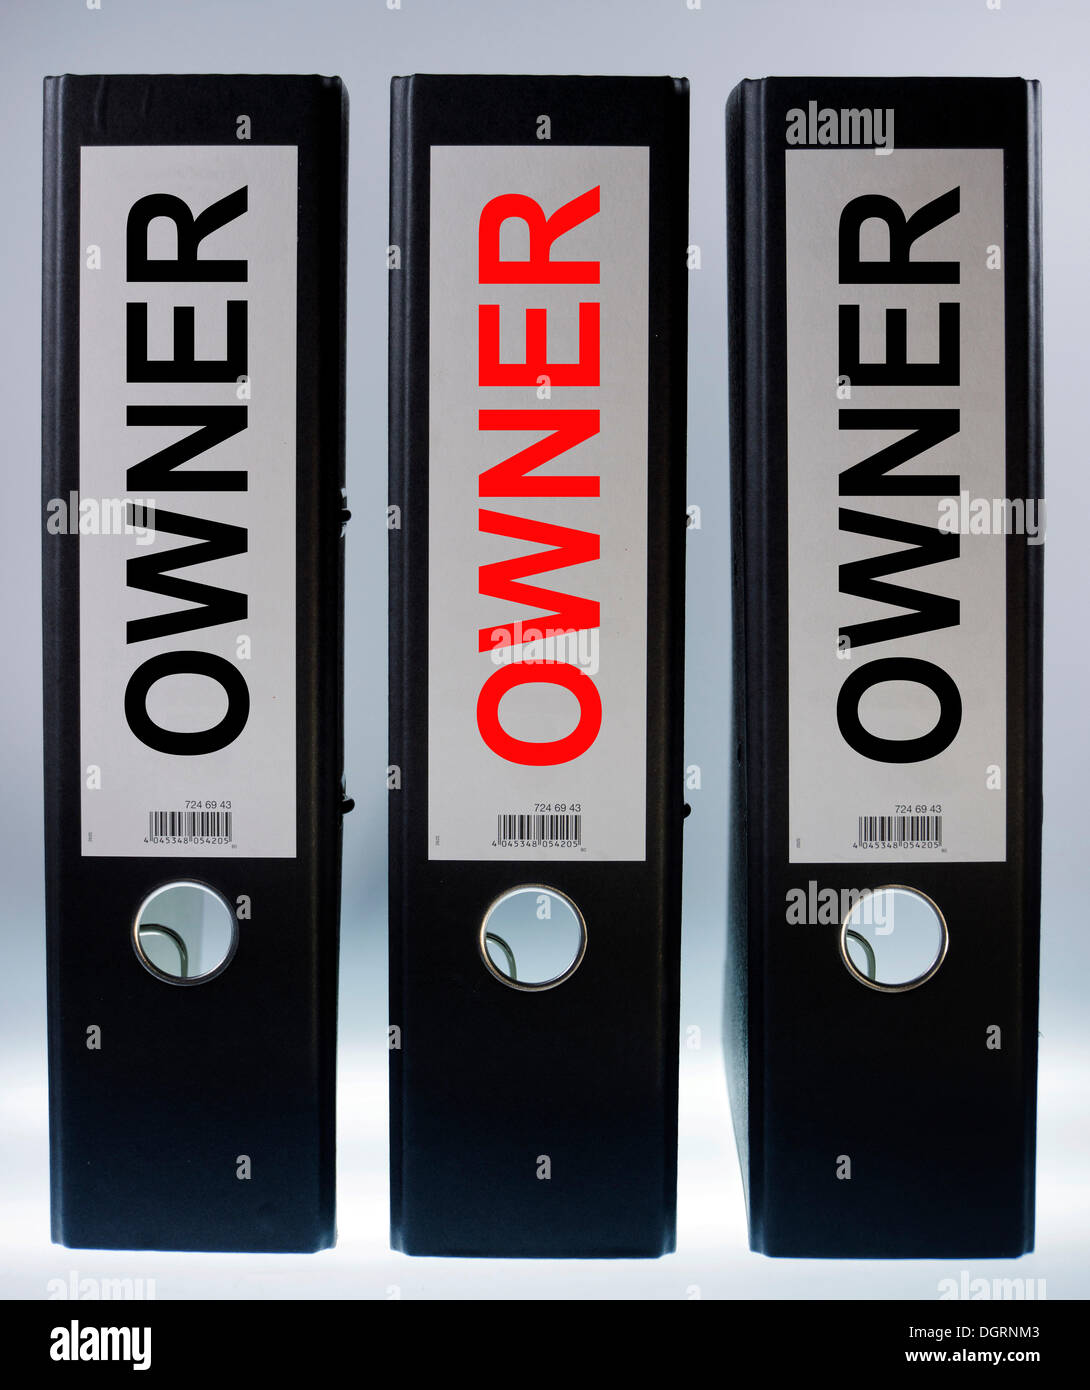 Three file folders labeled 'Owner' - Stock Image